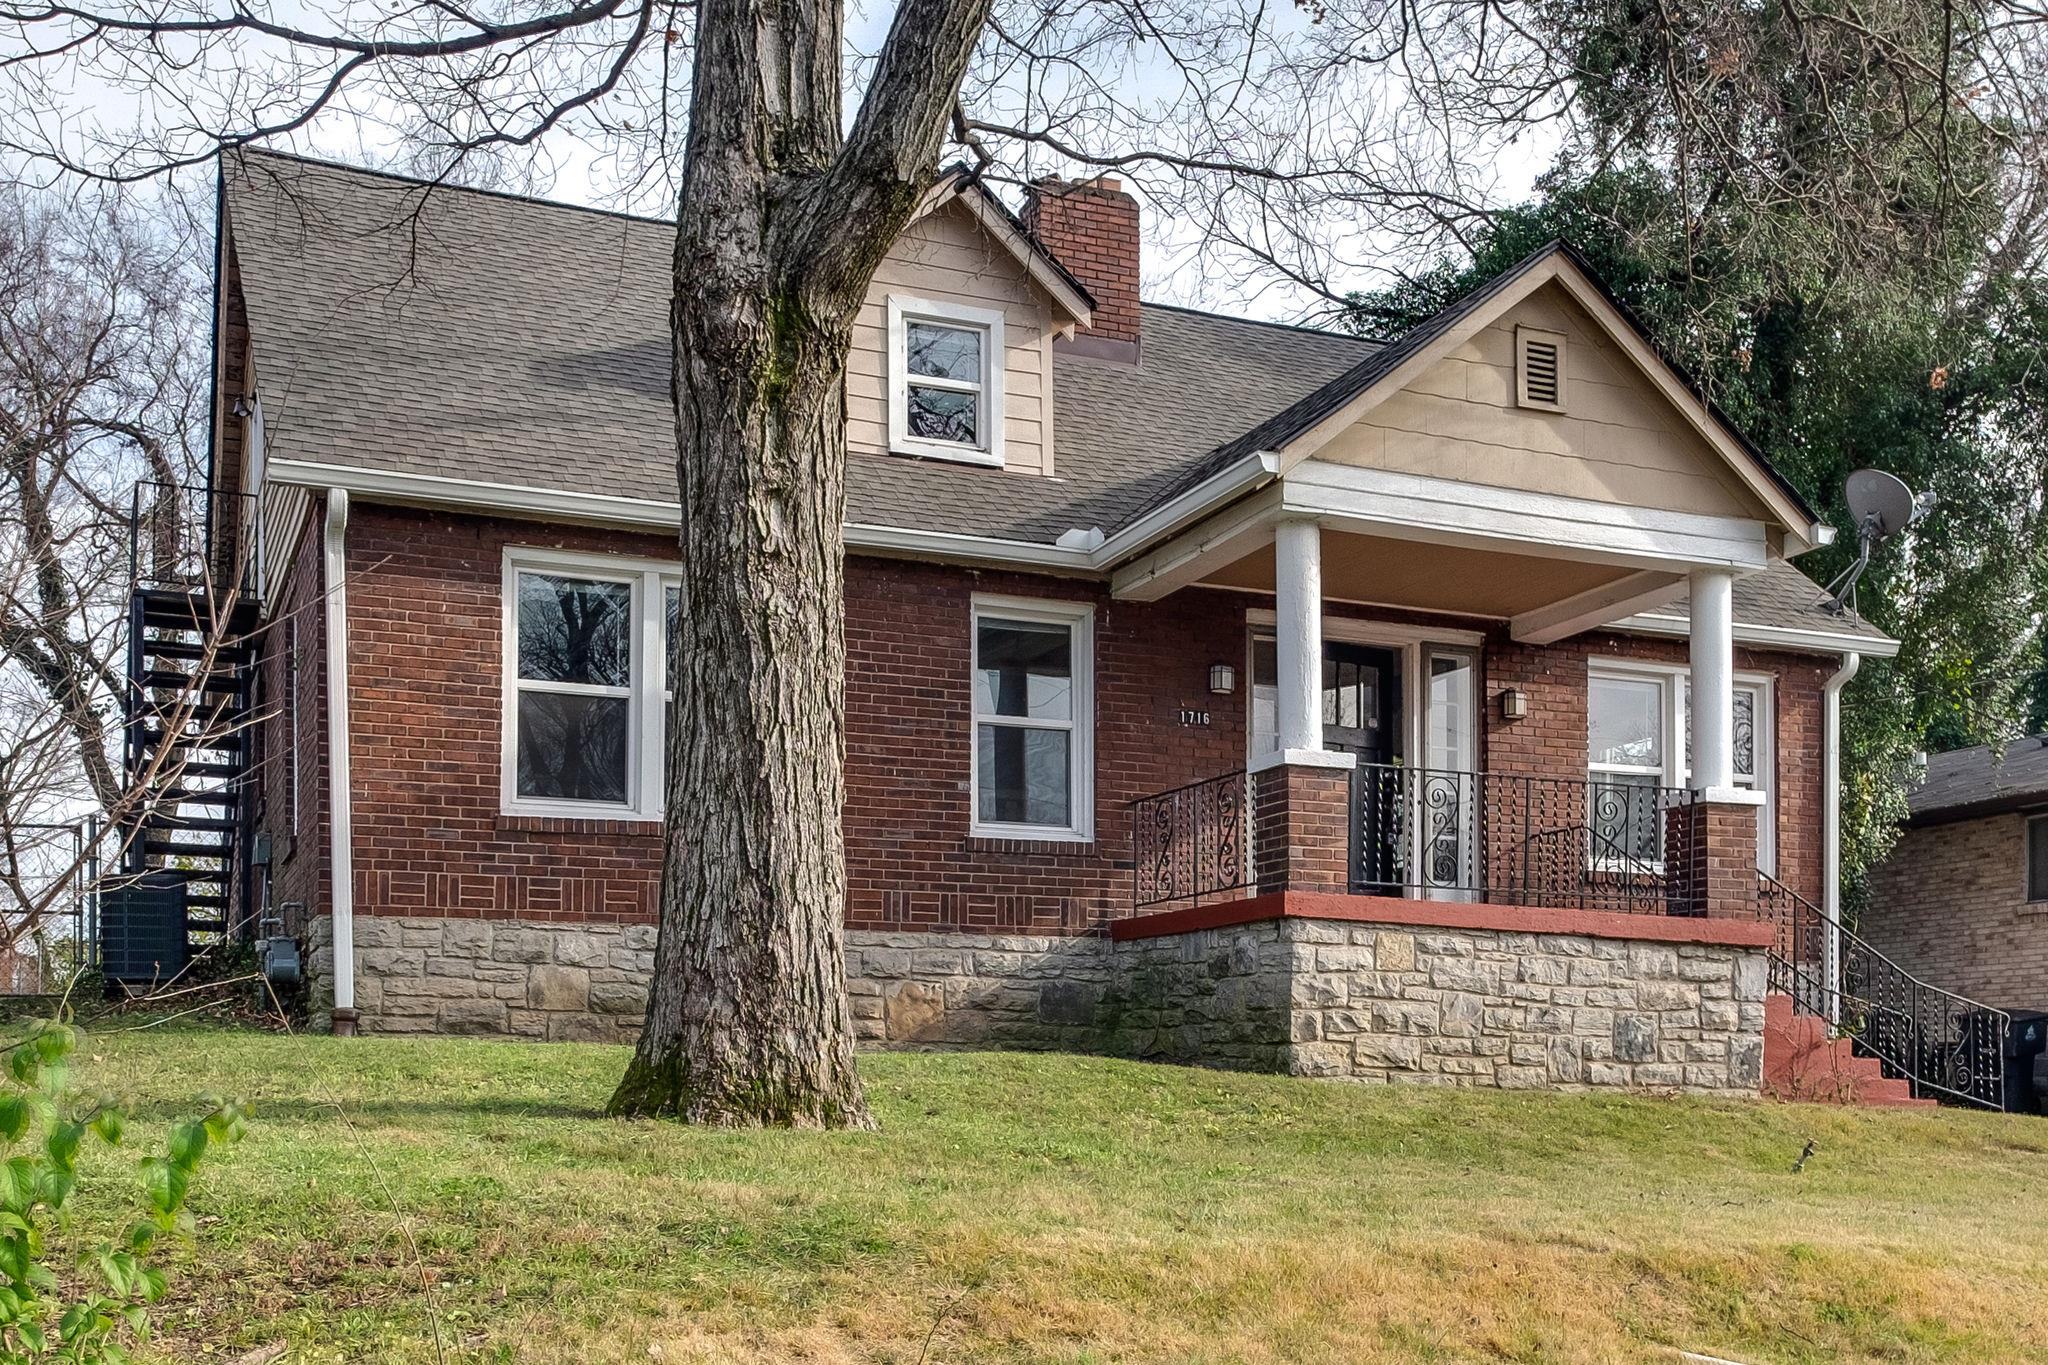 1716 NEAL TERRACE, Nashville - Midtown in Davidson County County, TN 37203 Home for Sale